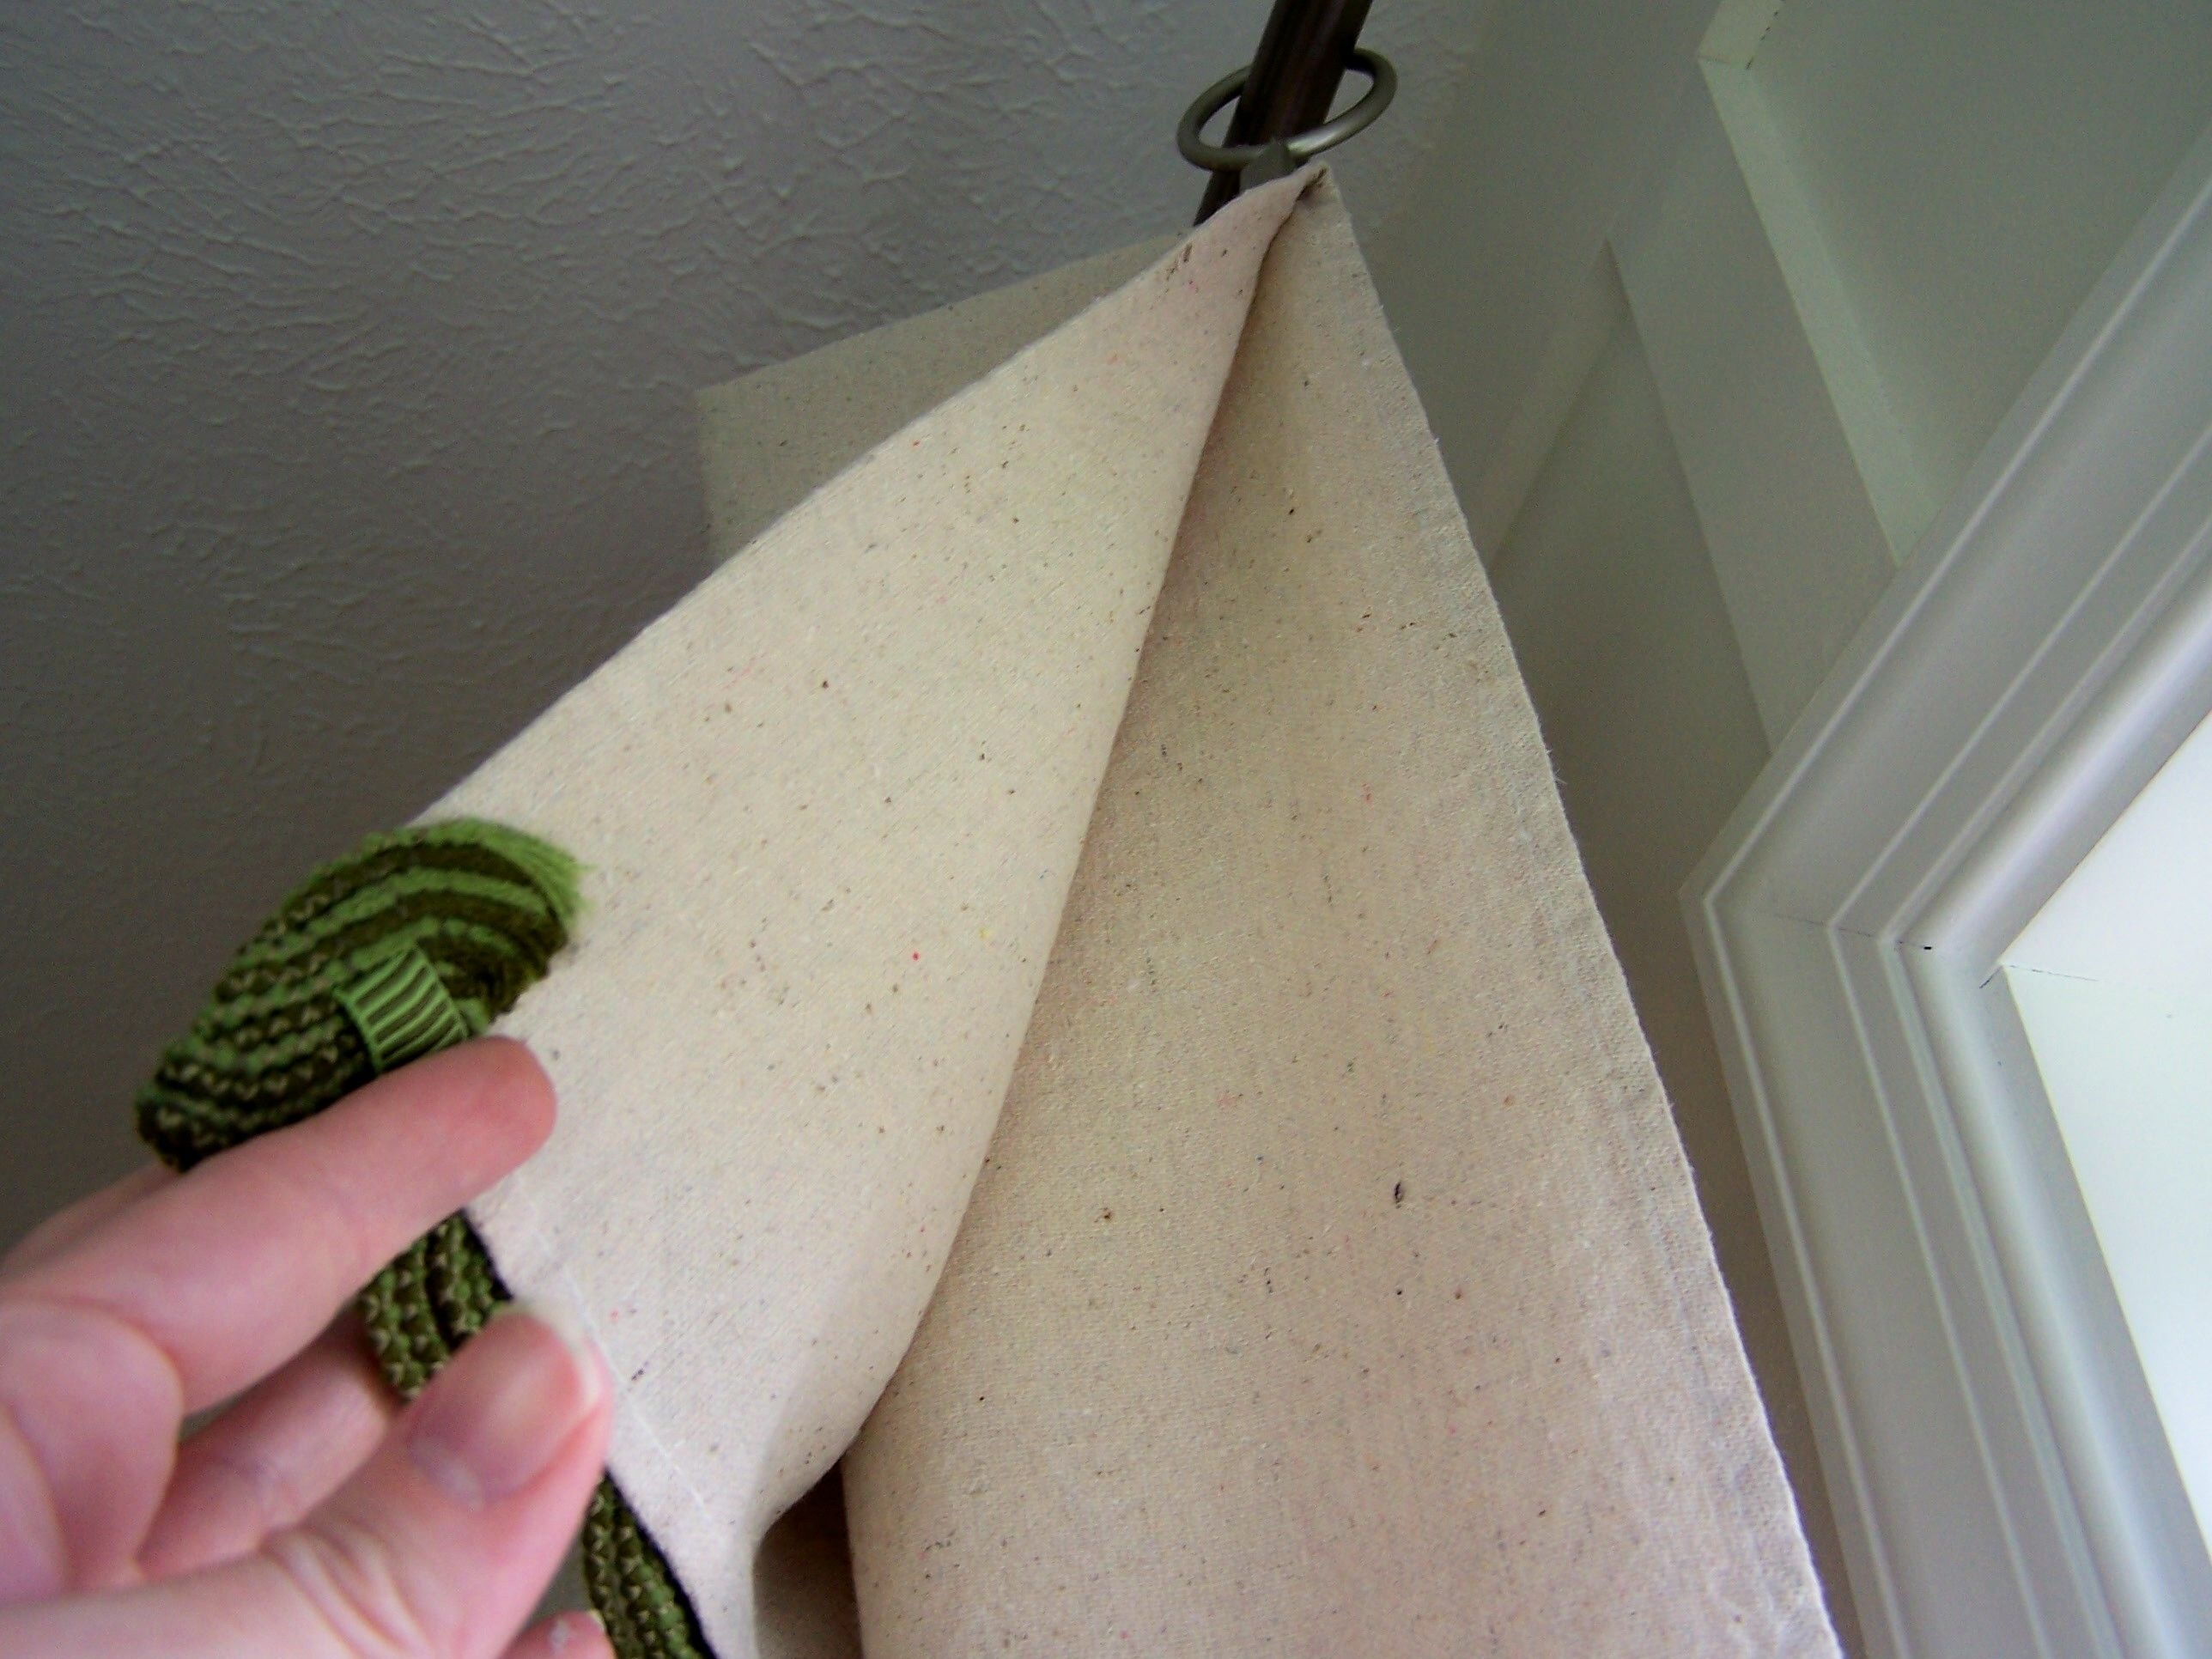 Diy Drop Cloth Curtains Image Detail For Diy Drop Cloth Curtains With A Twist Family